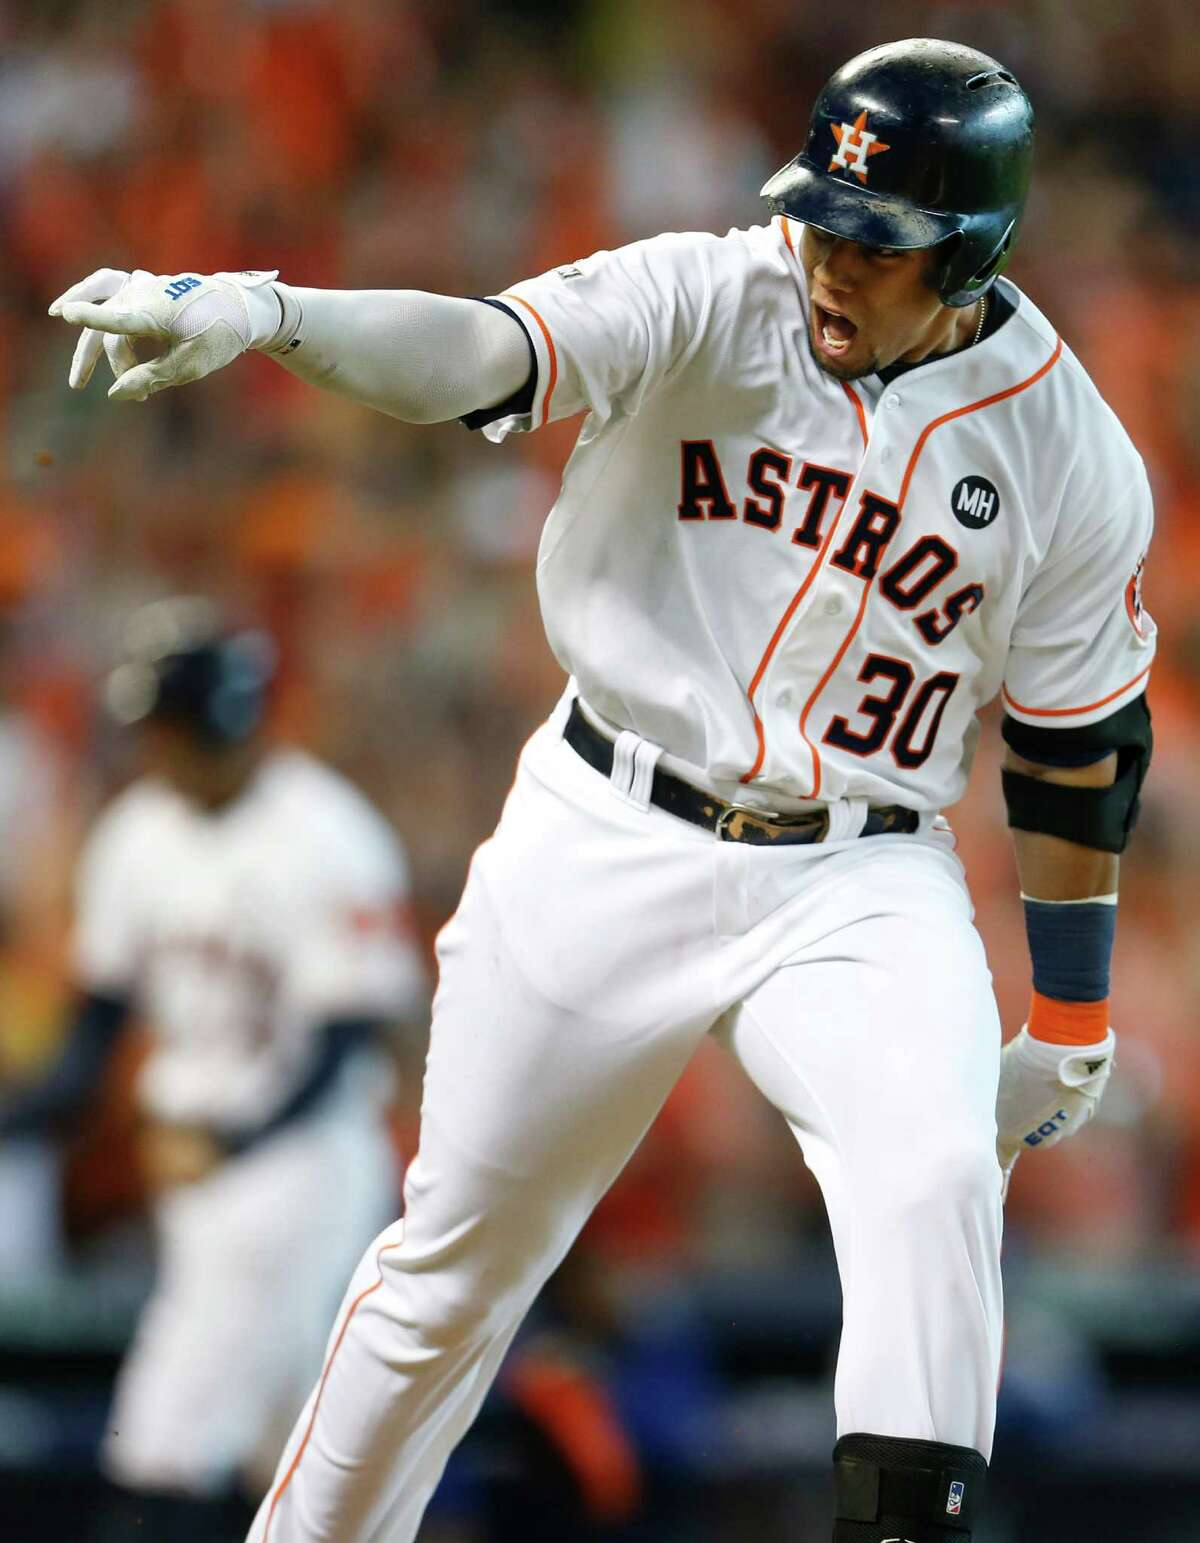 Houston Astros center fielder Carlos Gomez (30) points to the dugout after hitting an RBI single, scoring George Springer, off Kansas City Royals starting pitcher Edinson Volquez during the sixth inning of Game 3 of the American League Division Series at Minute Maid Park on Sunday, Oct. 11, 2015, in Houston. ( Karen Warren / Houston Chronicle )